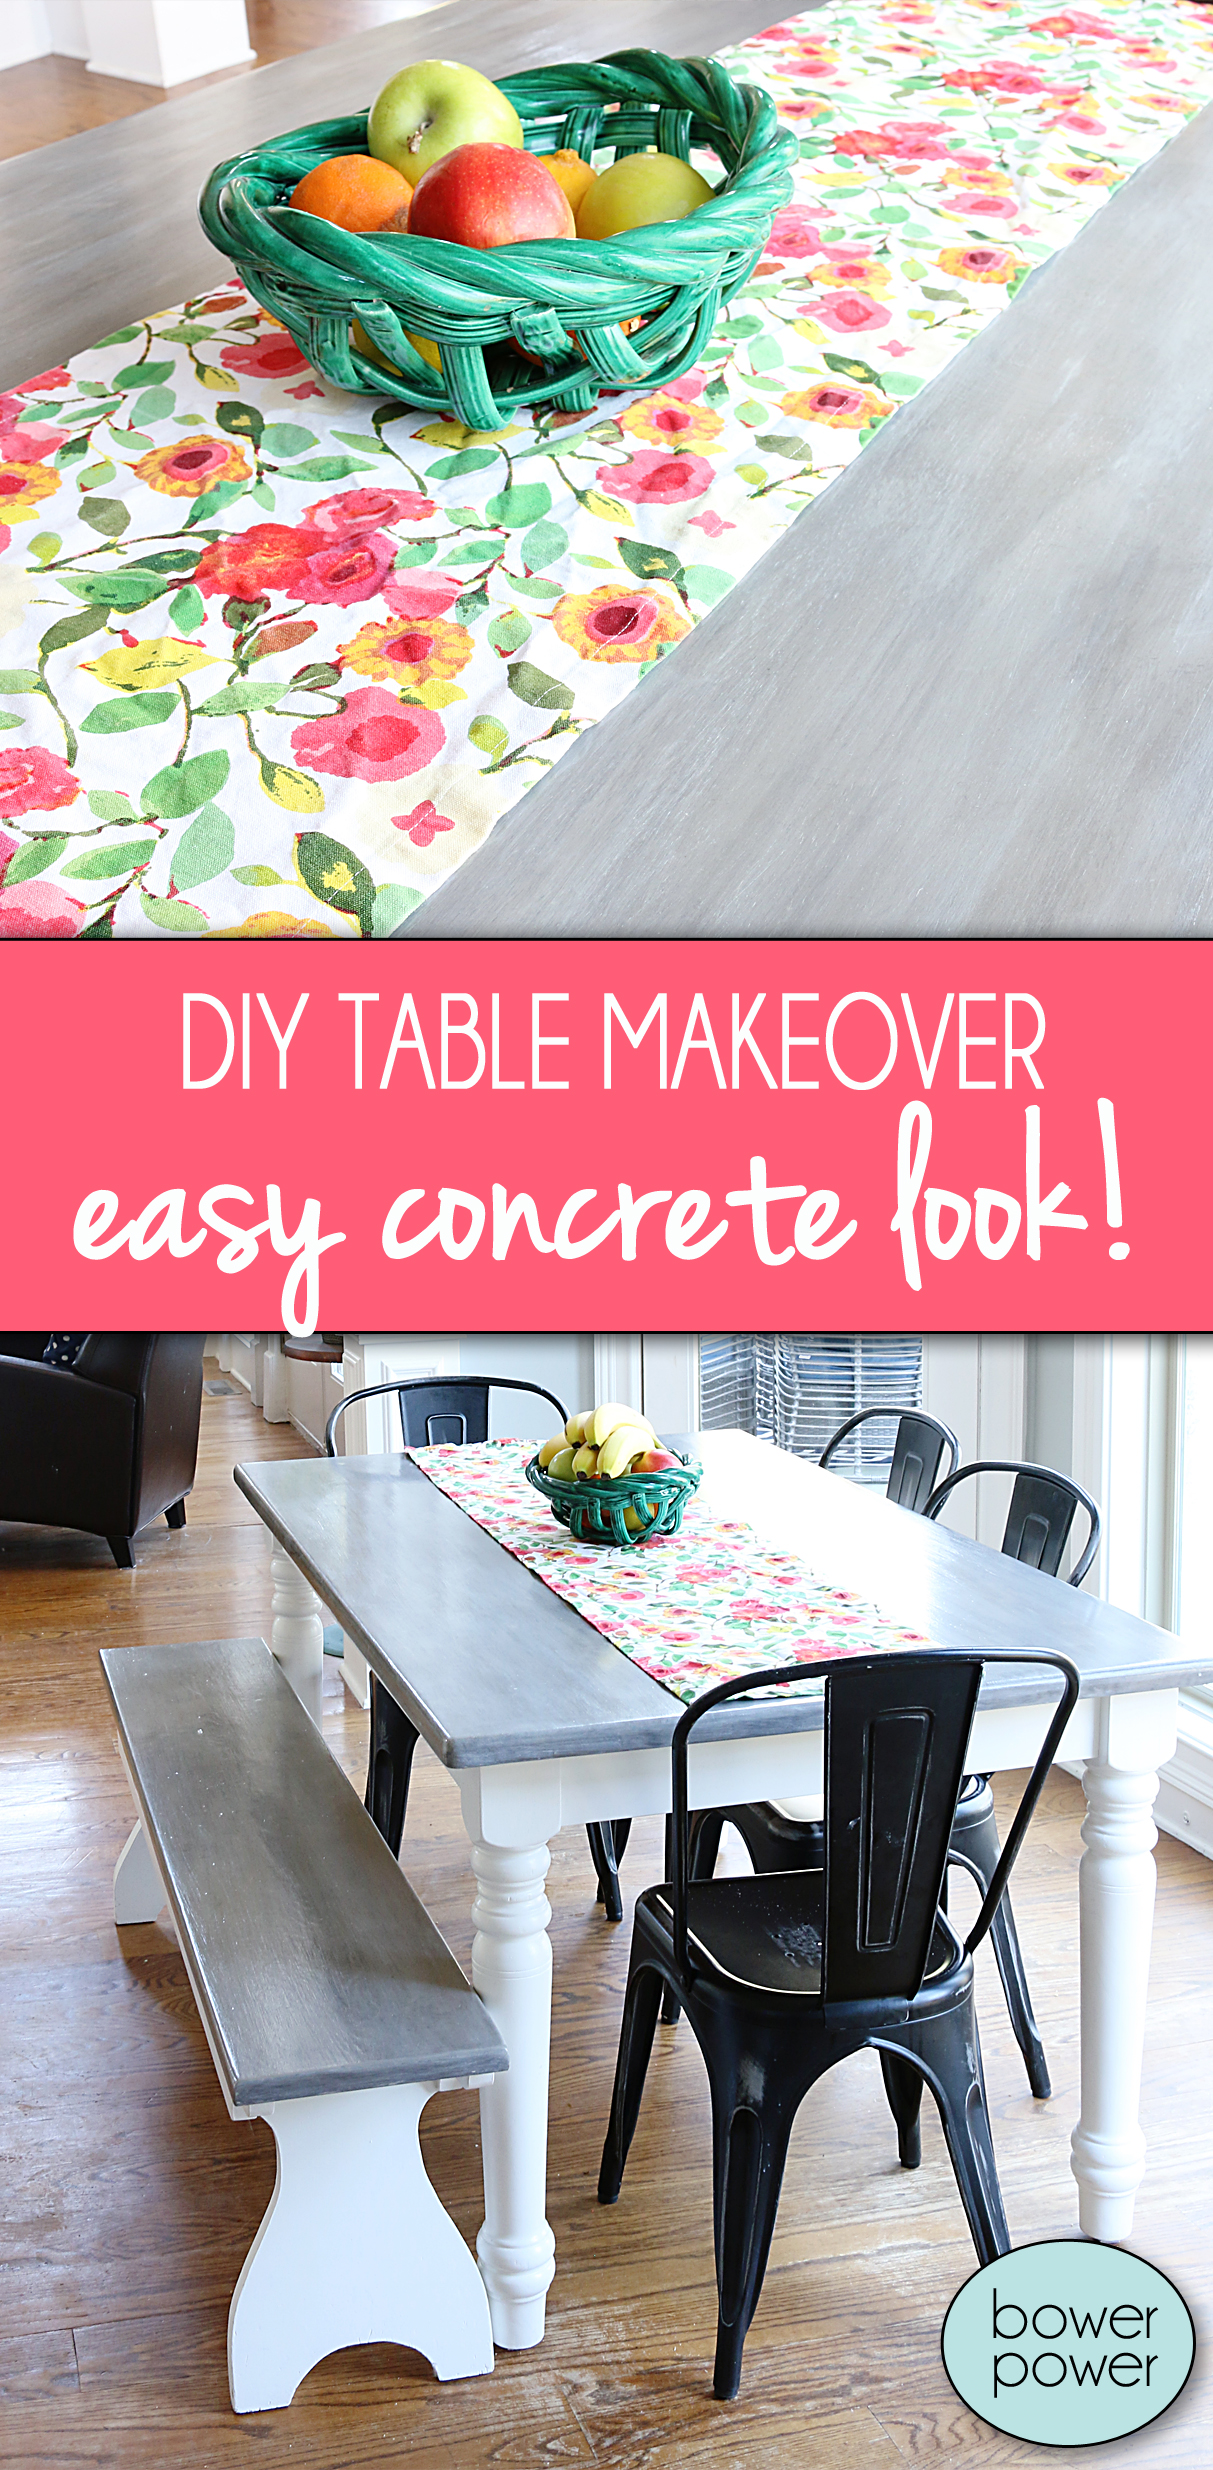 DIY Table Makeover - concrete look finish @bowerpowerblog